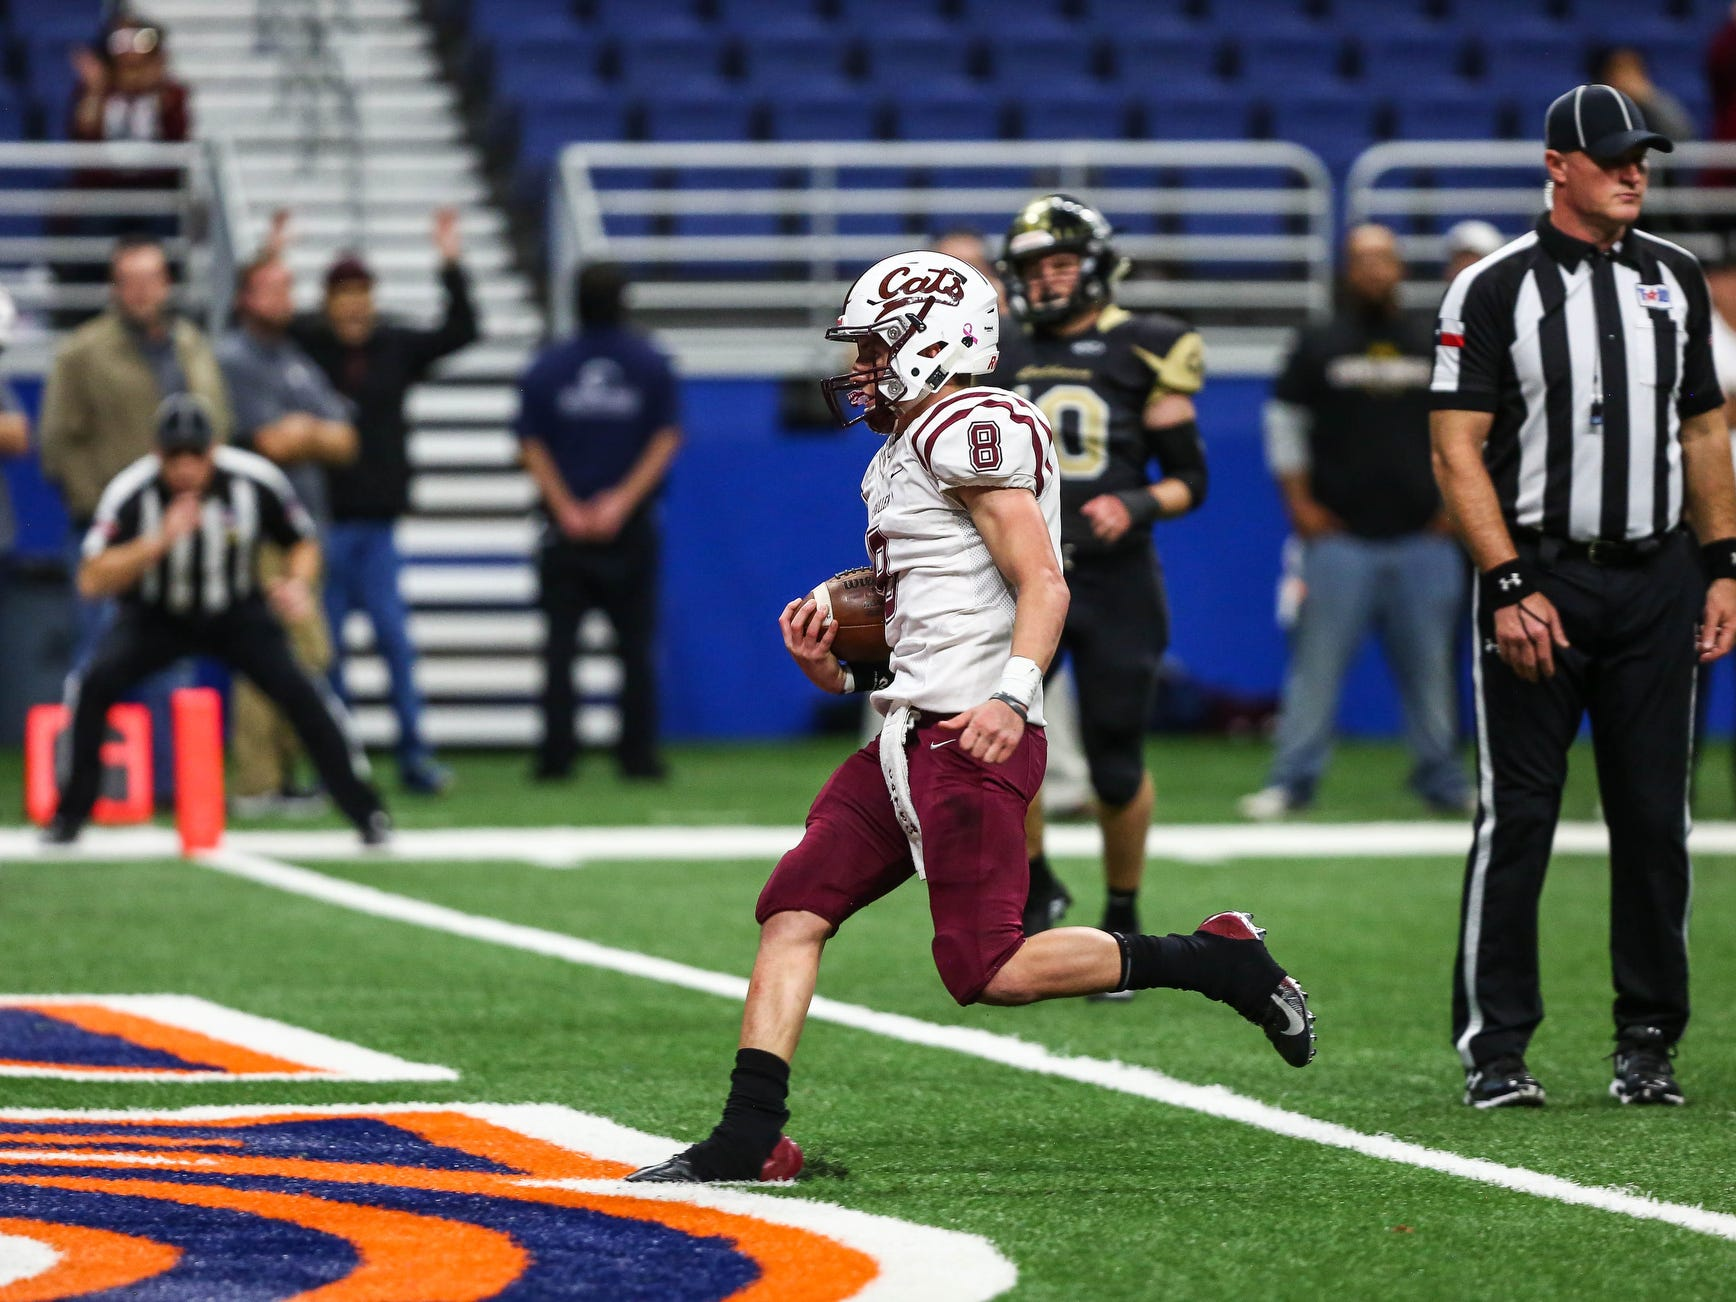 Calallen's Jarrett Garza scores a touchdown during Friday's game at the Alamodome.